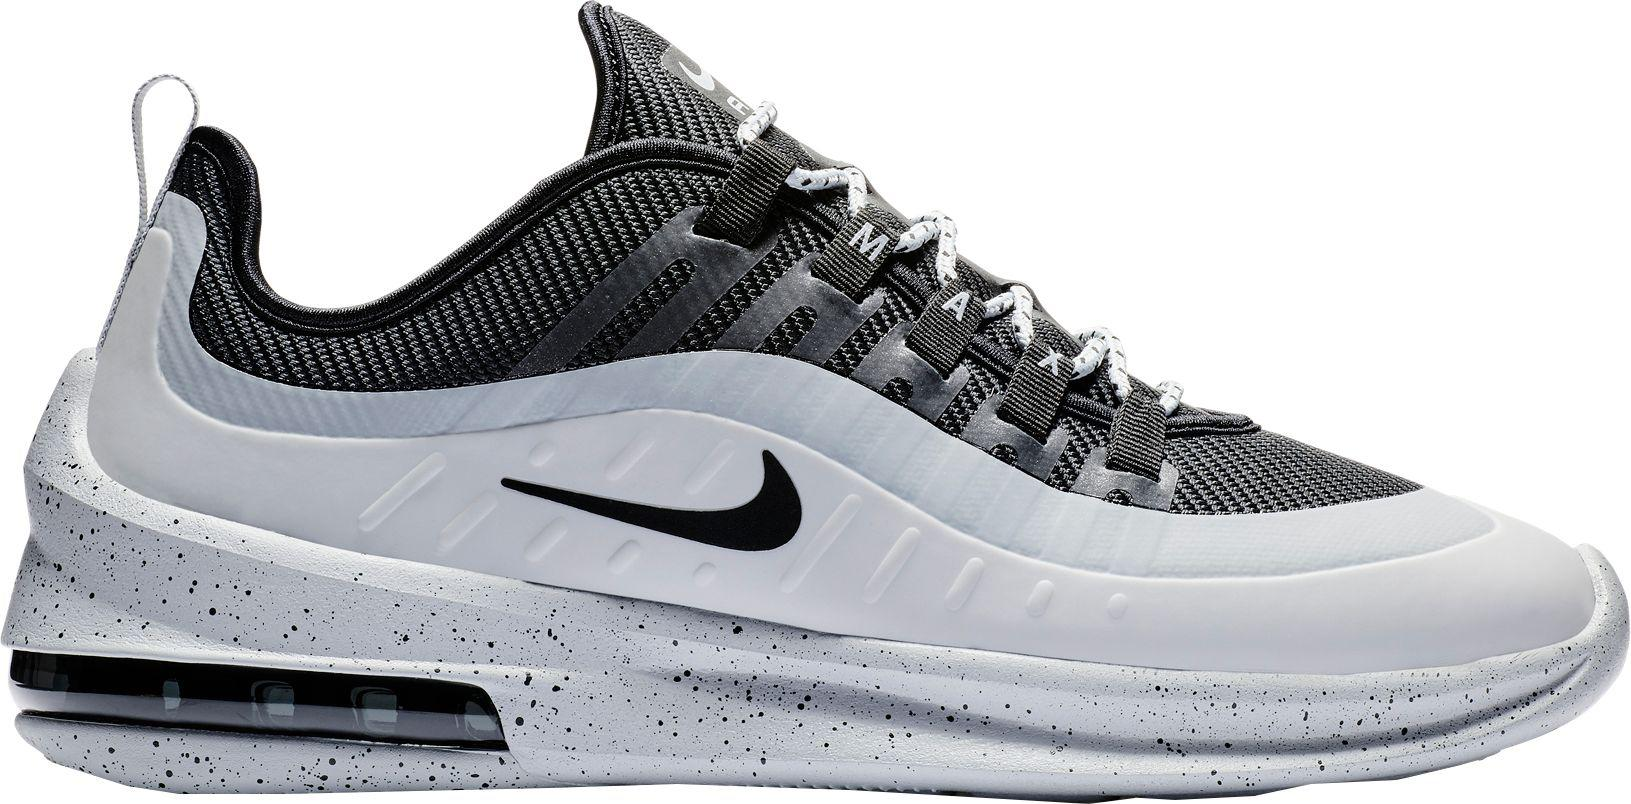 sports shoes 43a4f a25f2 Nike - Gray Air Max Axis Premium Shoes for Men - Lyst